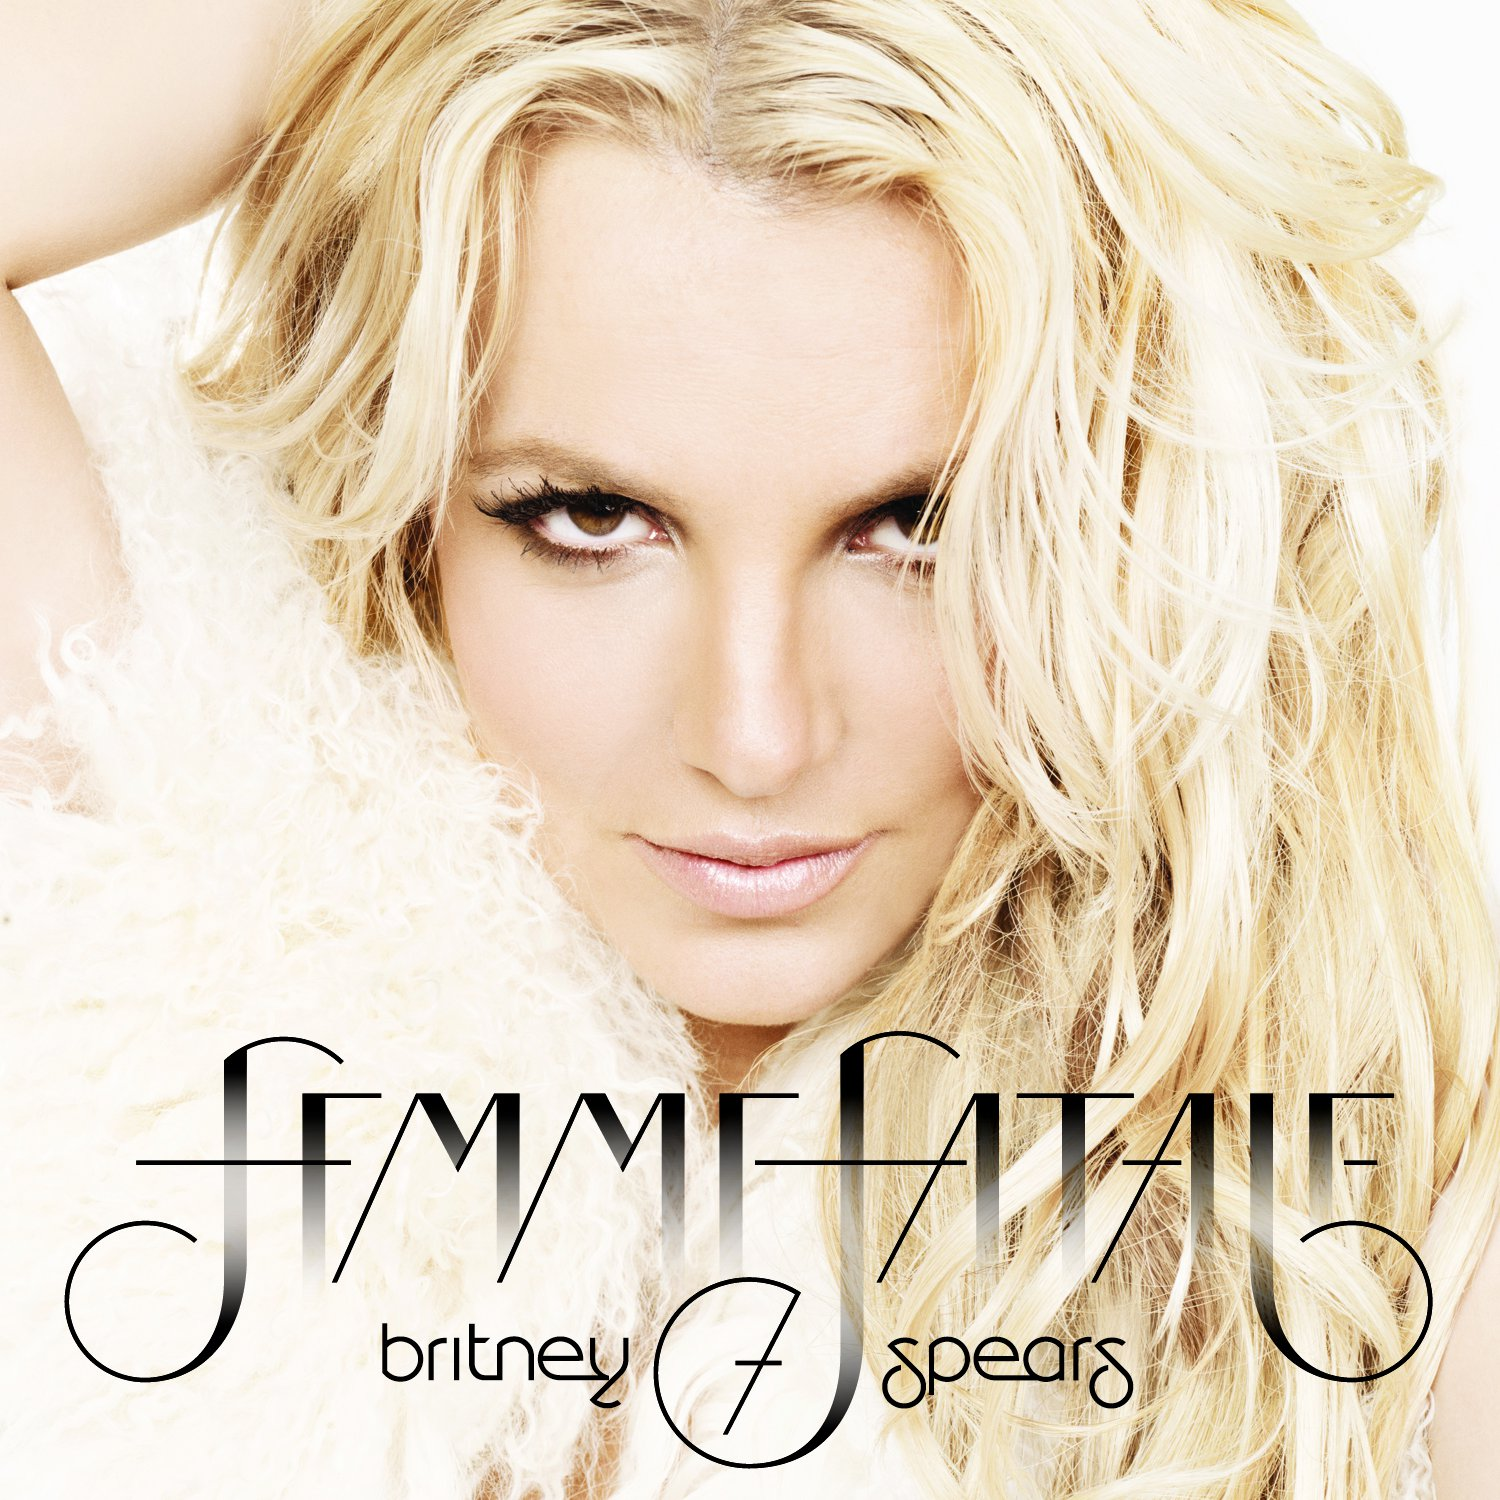 http://2.bp.blogspot.com/_zjVydElJEho/TUoascLcMVI/AAAAAAAAEME/0MTfVJMRXow/s1600/Britney+Spears+-+Femme+Fatale+%28Official+Album+Cover%29+Thanx+to+Sam+-+Out+March.jpg